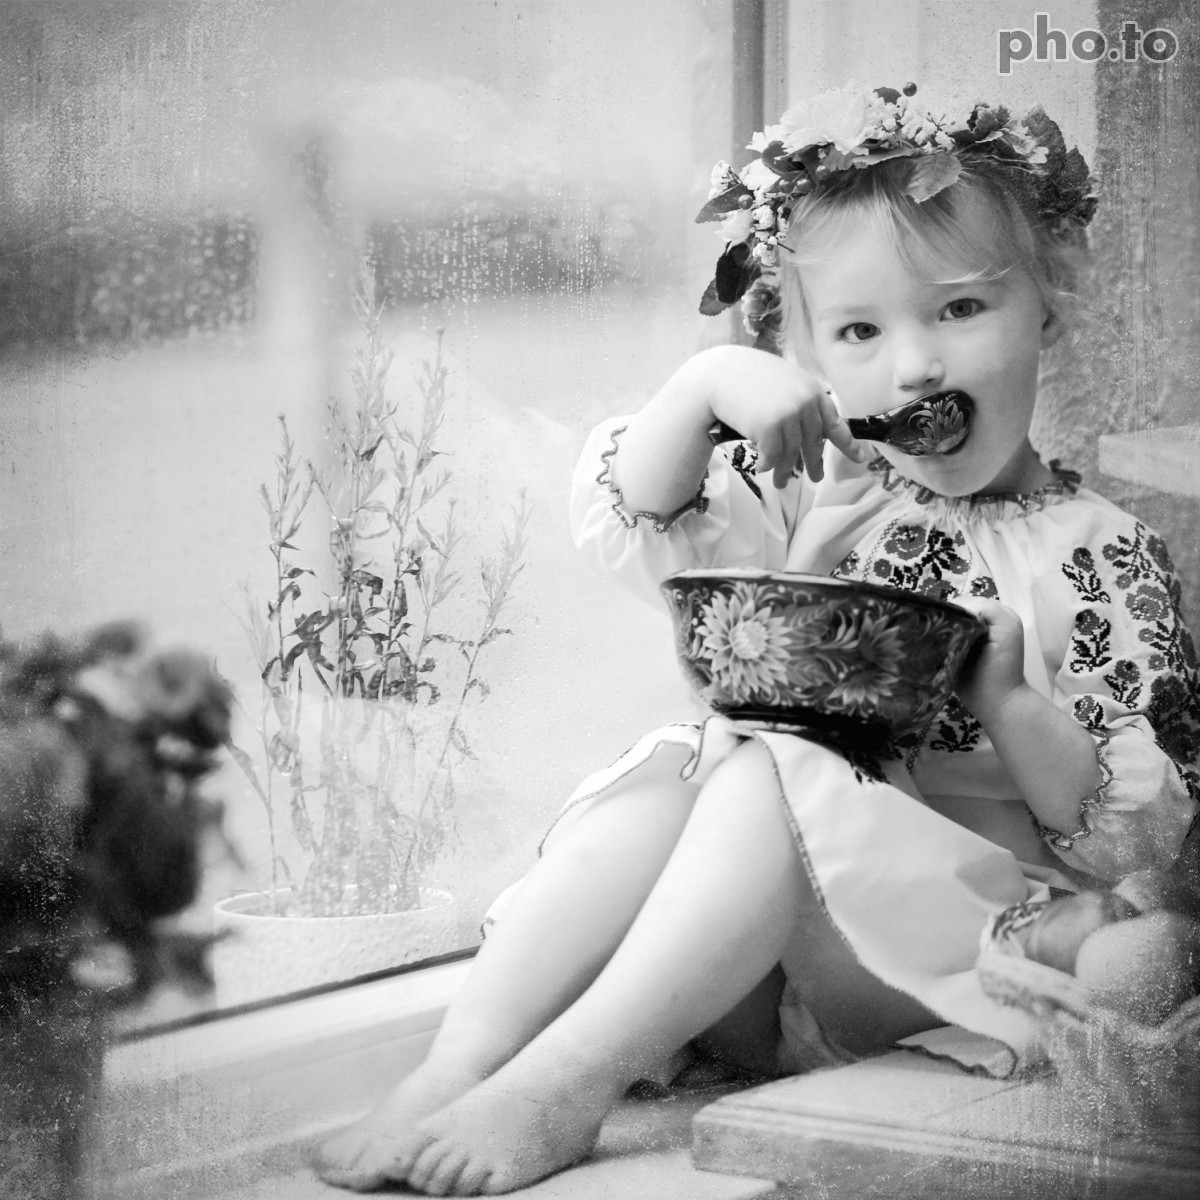 A pretty little girls photo was converted to black and white online